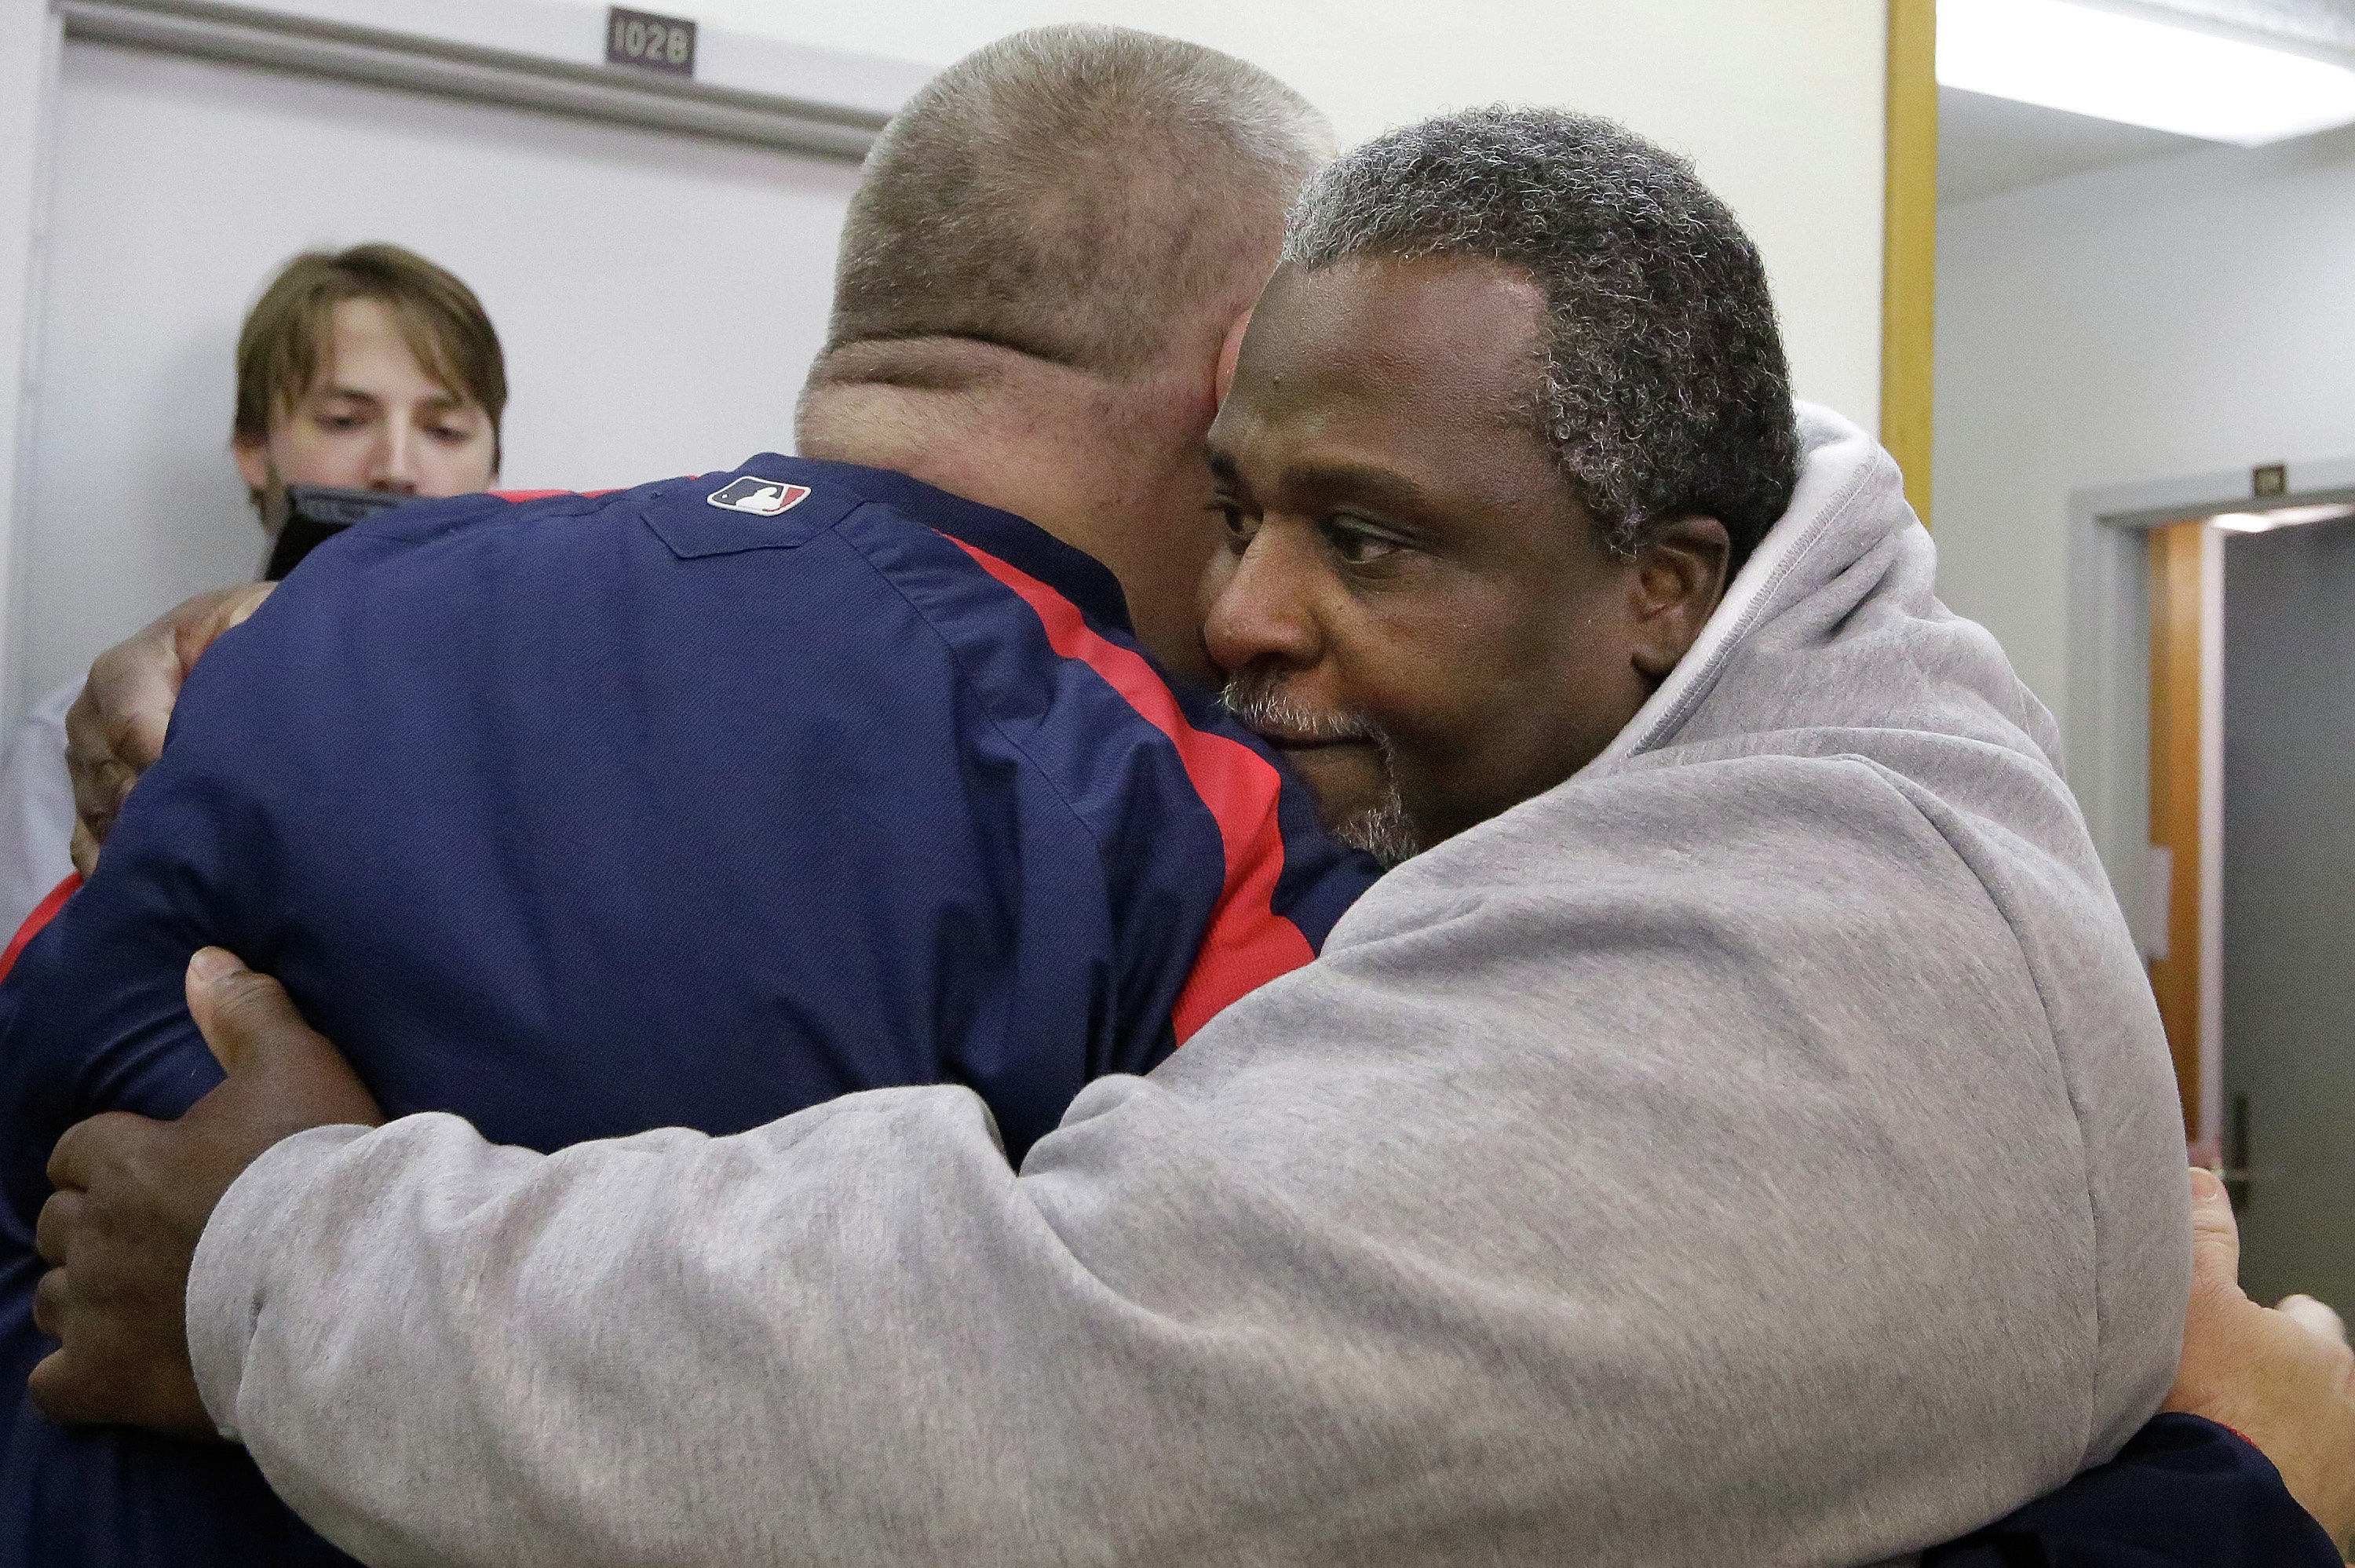 Alstory Simon, right, hugs supporter Shawn Rech, left, while leaving the Jacksonville Correction Center as a free man.